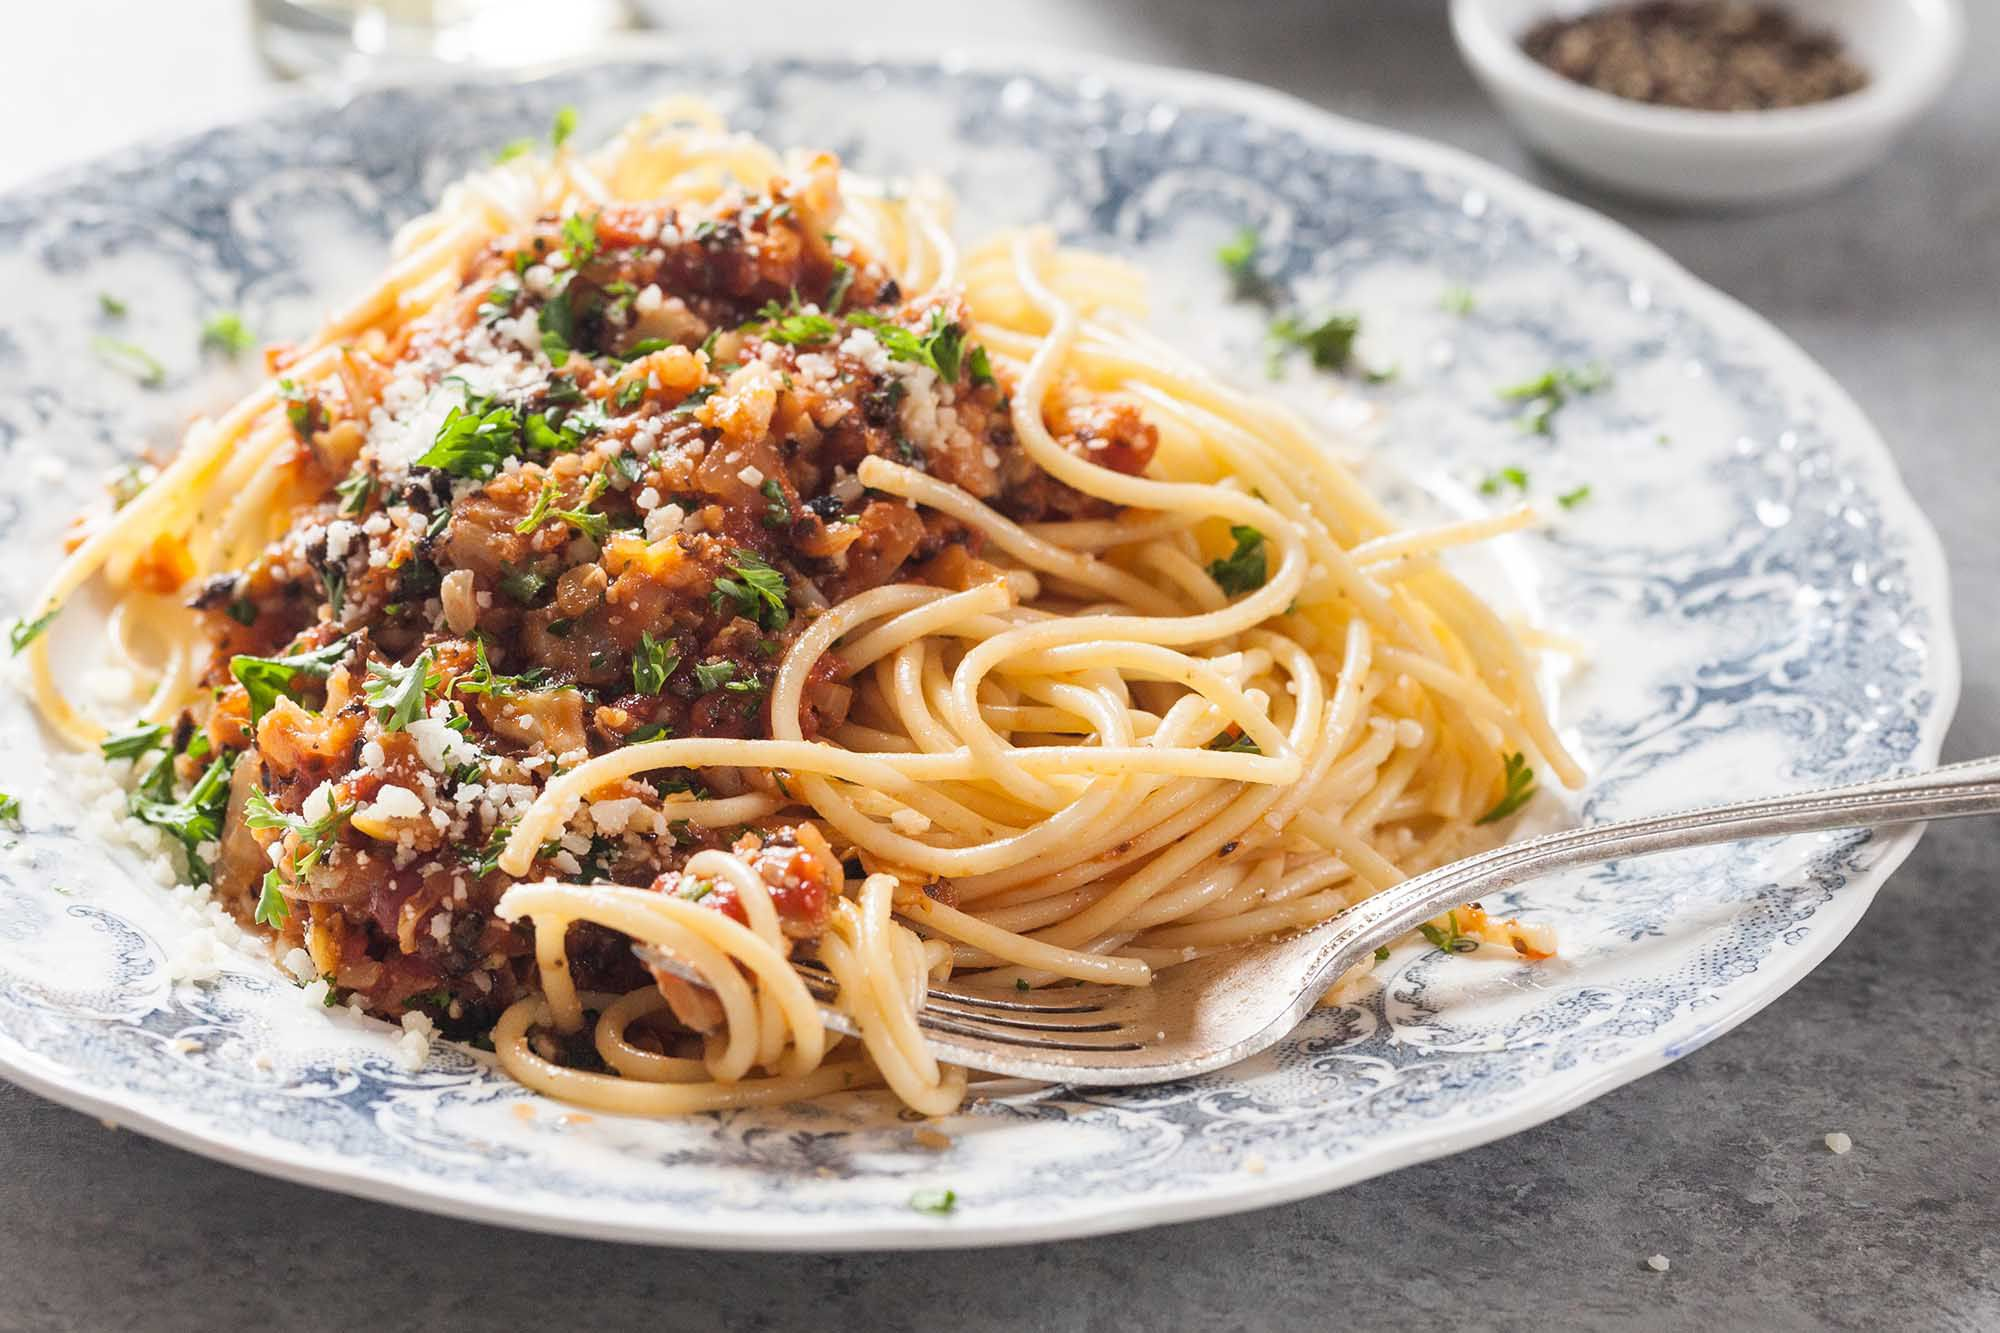 Cauliflower Bolognese on a plate with spaghetti and a fork.